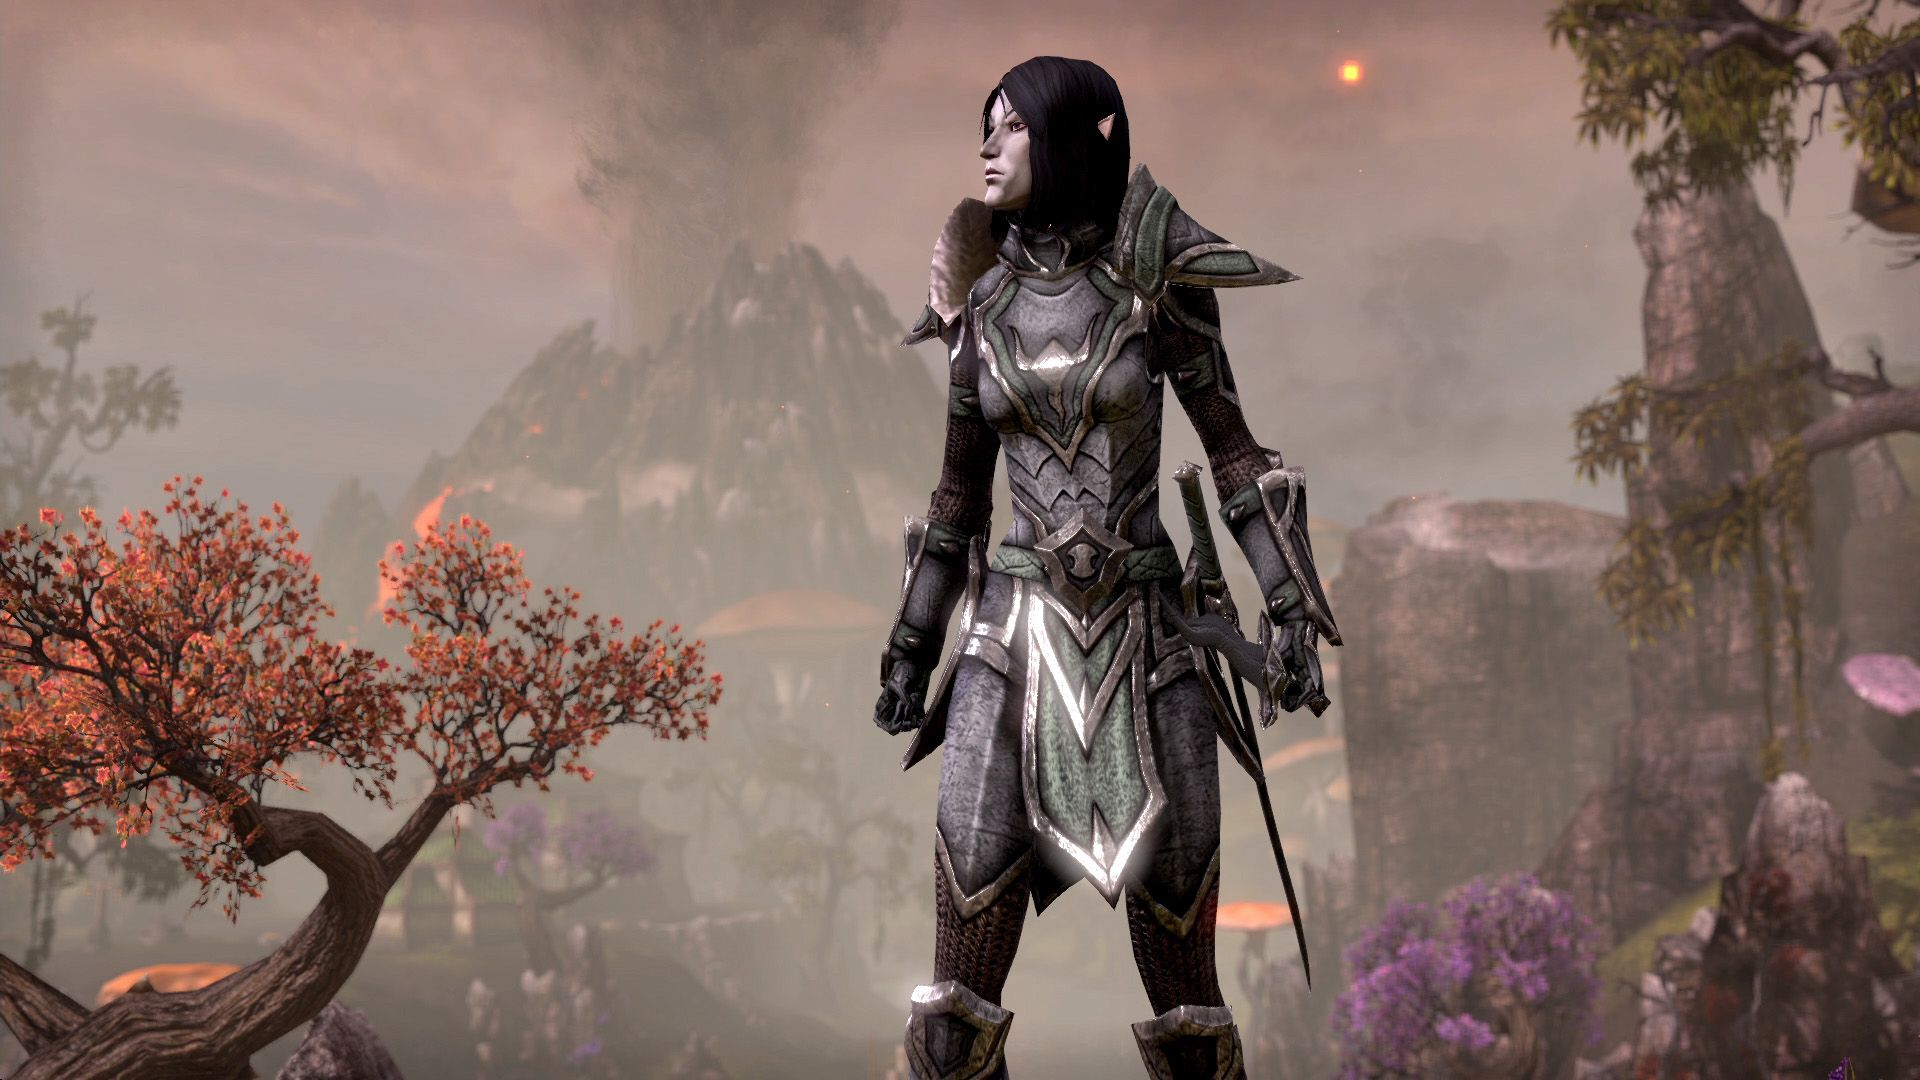 Character Avatar - Elder Scrolls Online #ESO gaming games images ...